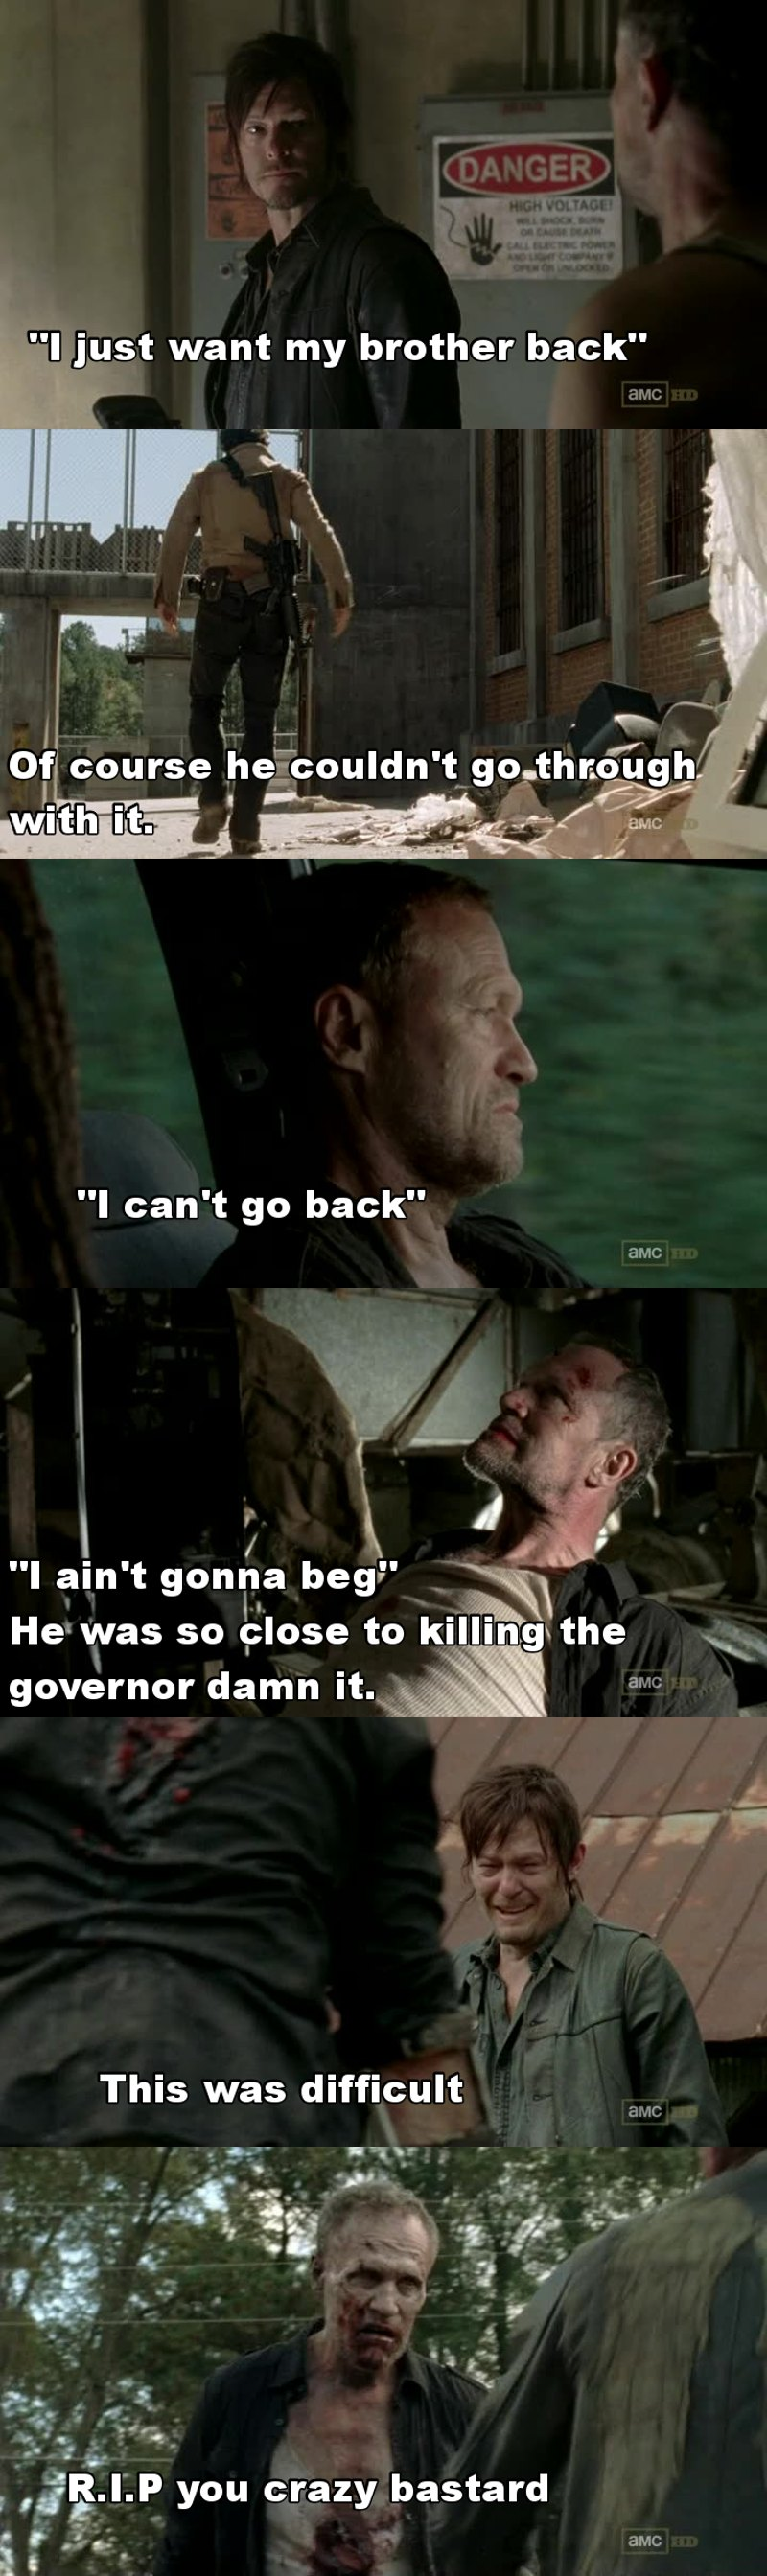 I could see his death approaching fast with how quickly he was being developed as a character, not just a blithering idiot with a taste for violence but an actual person who loved his brother.  R.I.P Merle